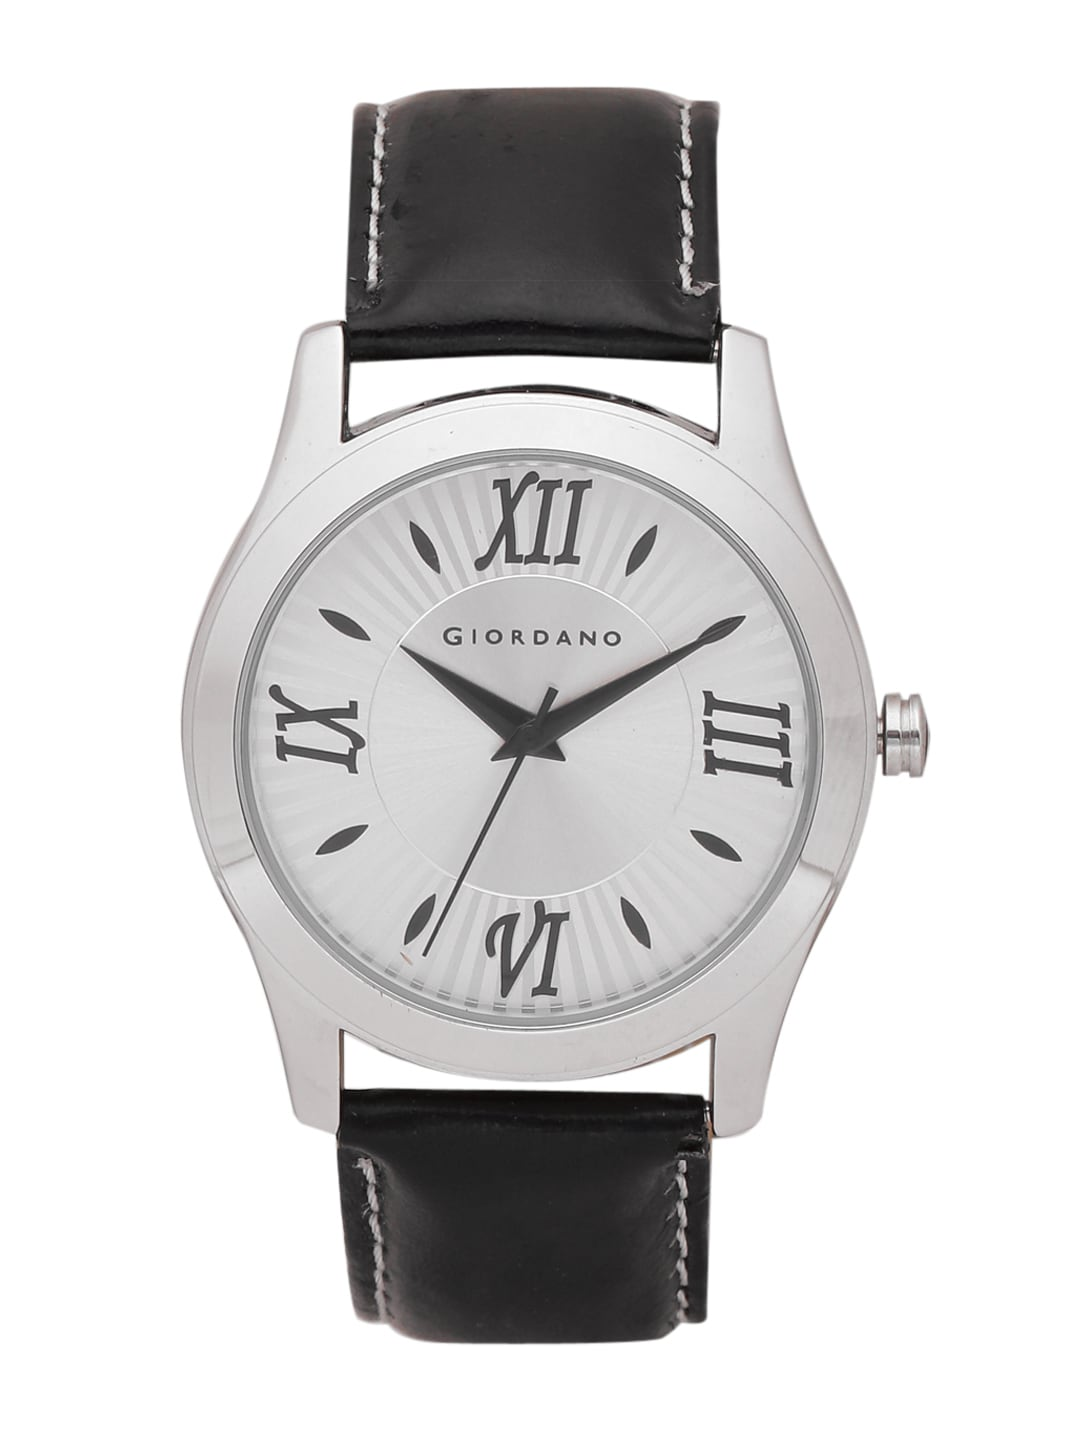 GIORDANO Men Silver-Toned Analogue Watch image